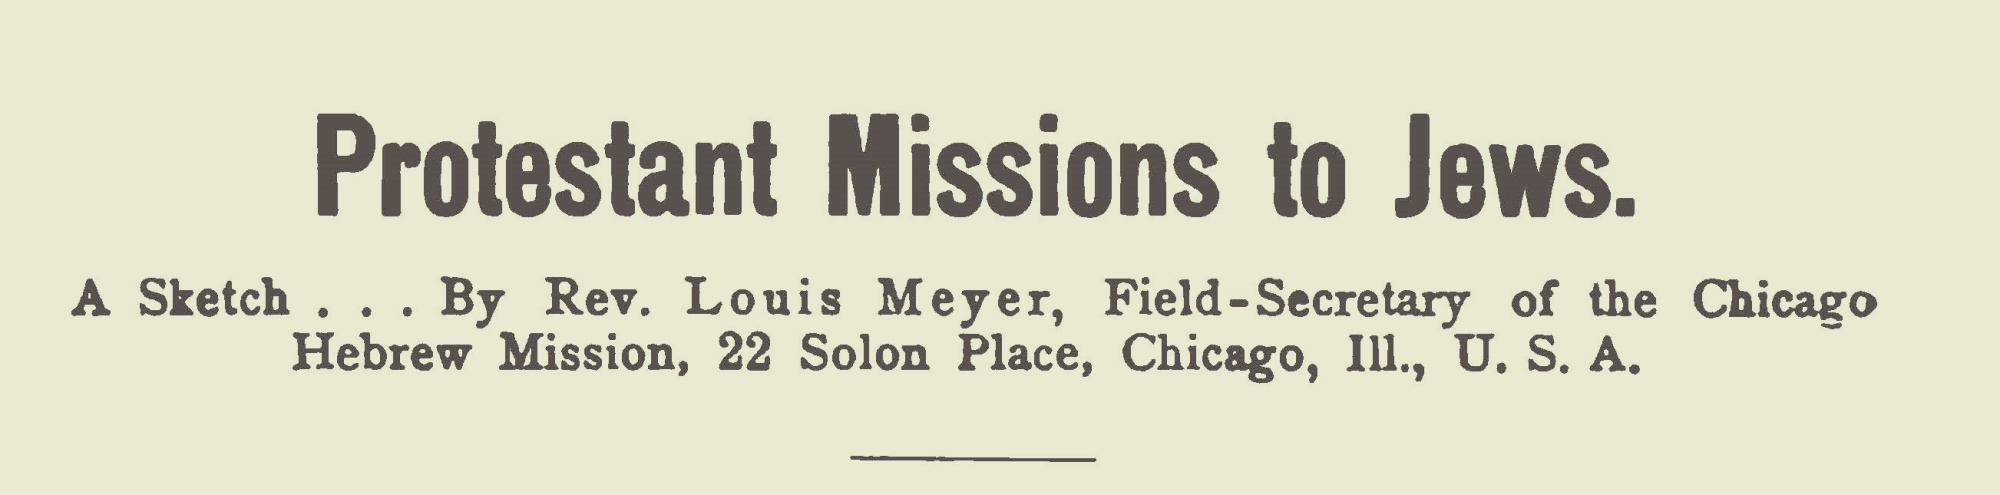 Meyer, Louis, 1906 Protestant Missions to the Jews Title Page.jpg